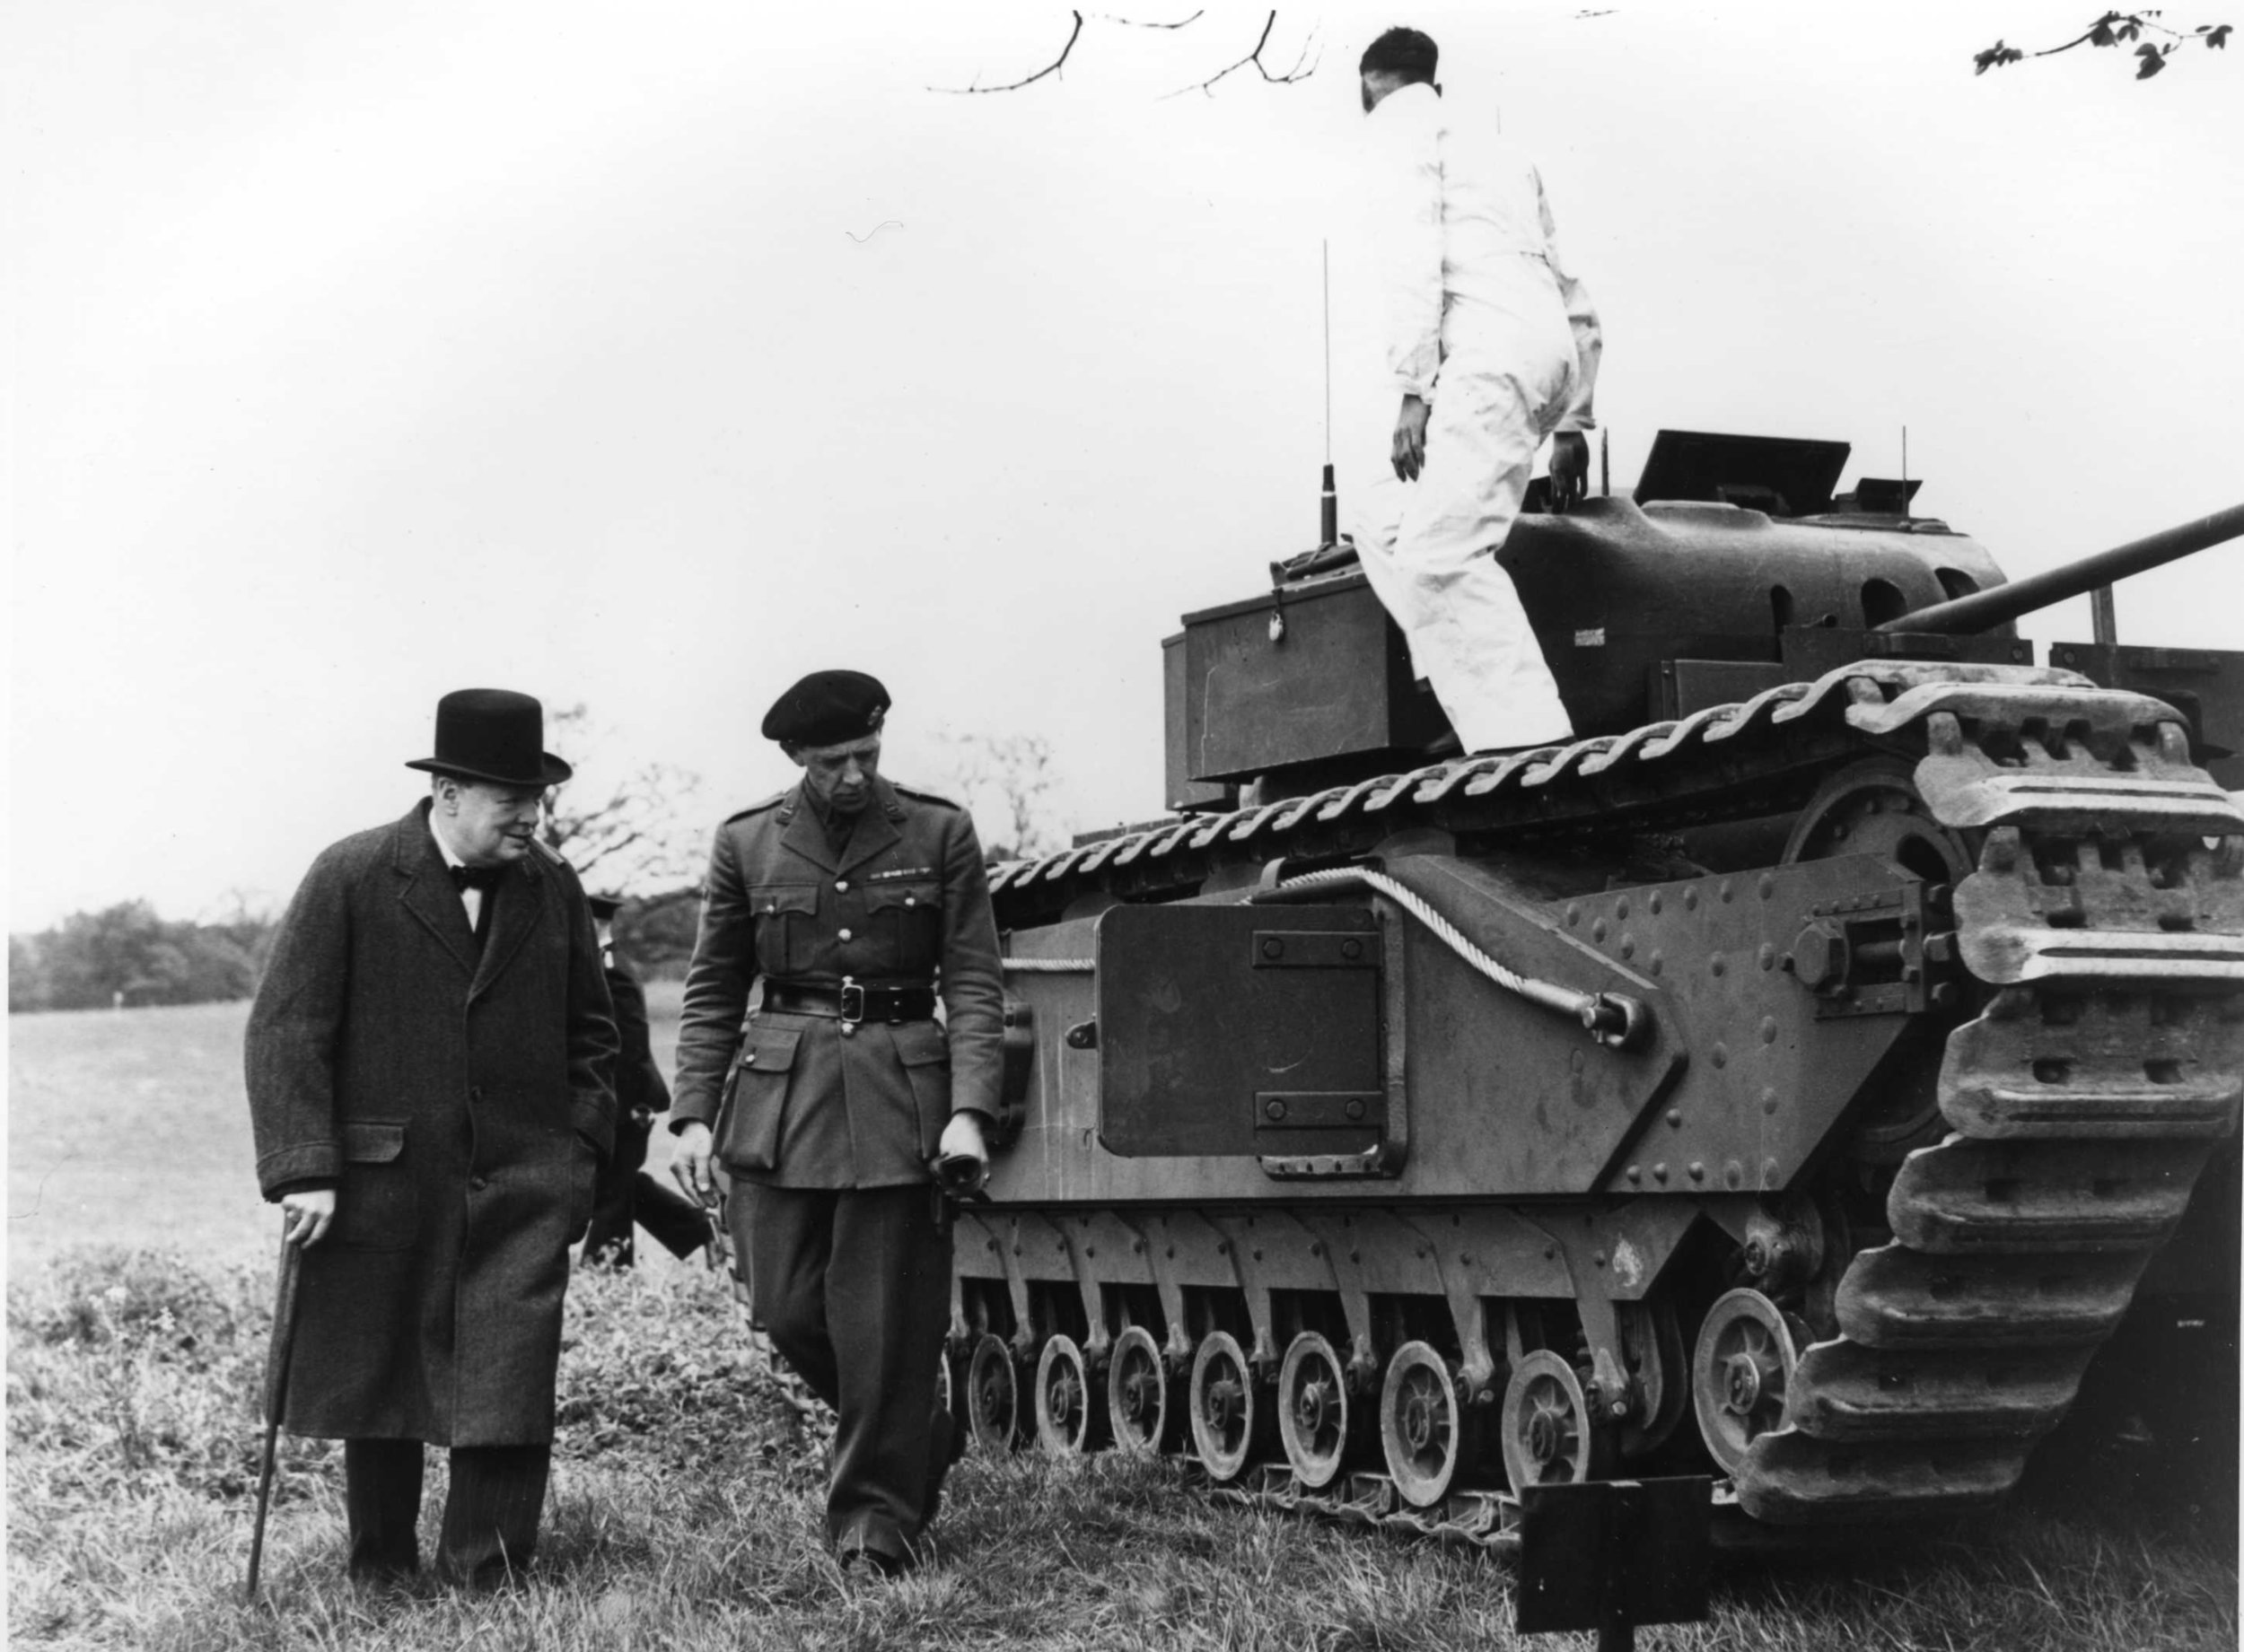 Prime Minister Winston Churchill inspecting Churchill tank made by Vauxhall in 1940. Named coined from Churchill's ancester John Churchill, Duke of Marlborough.